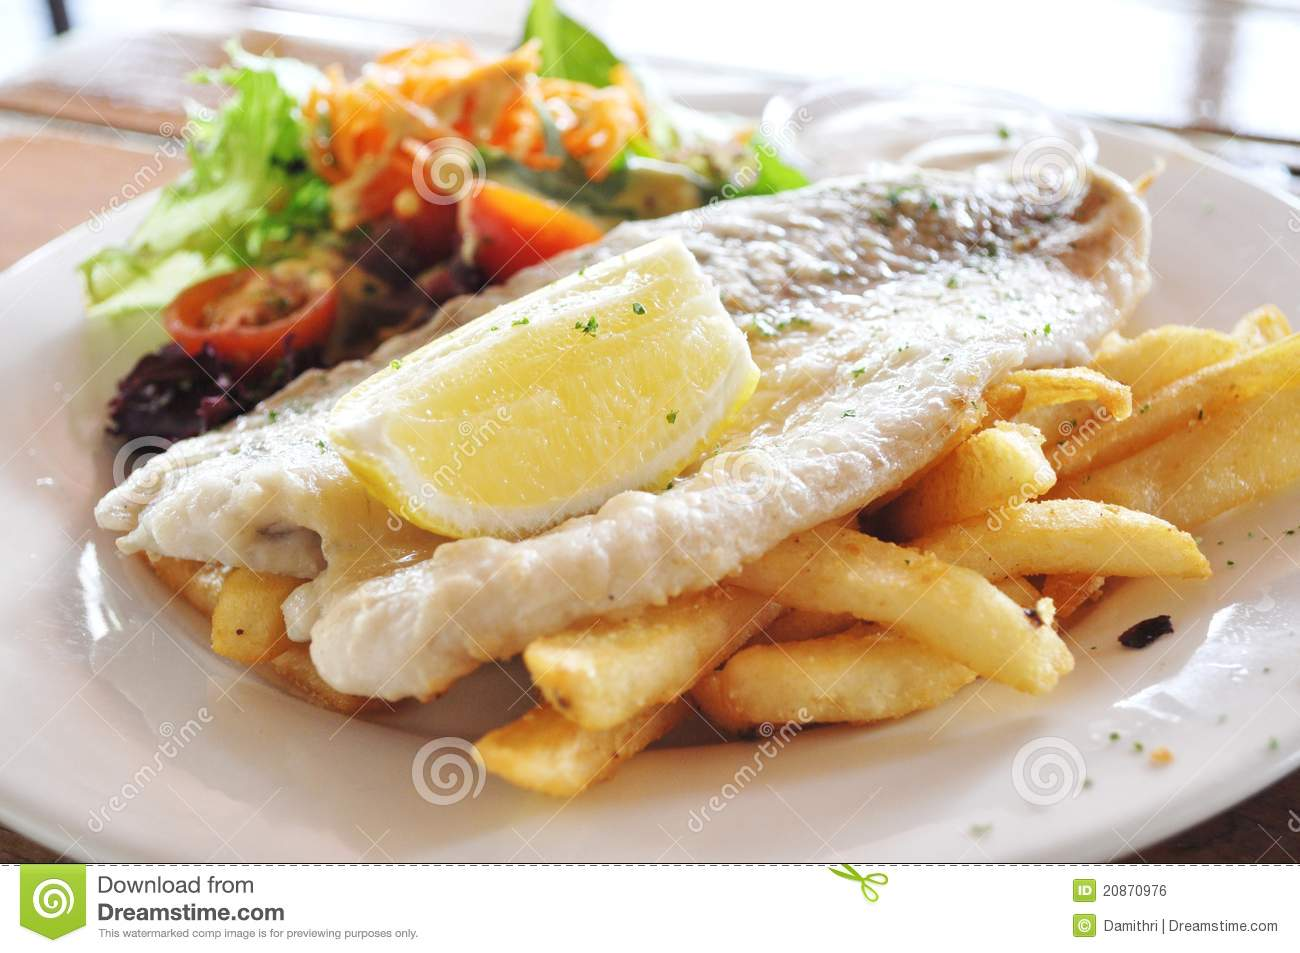 Grilled fish and chips royalty free stock image image for Fish and grill